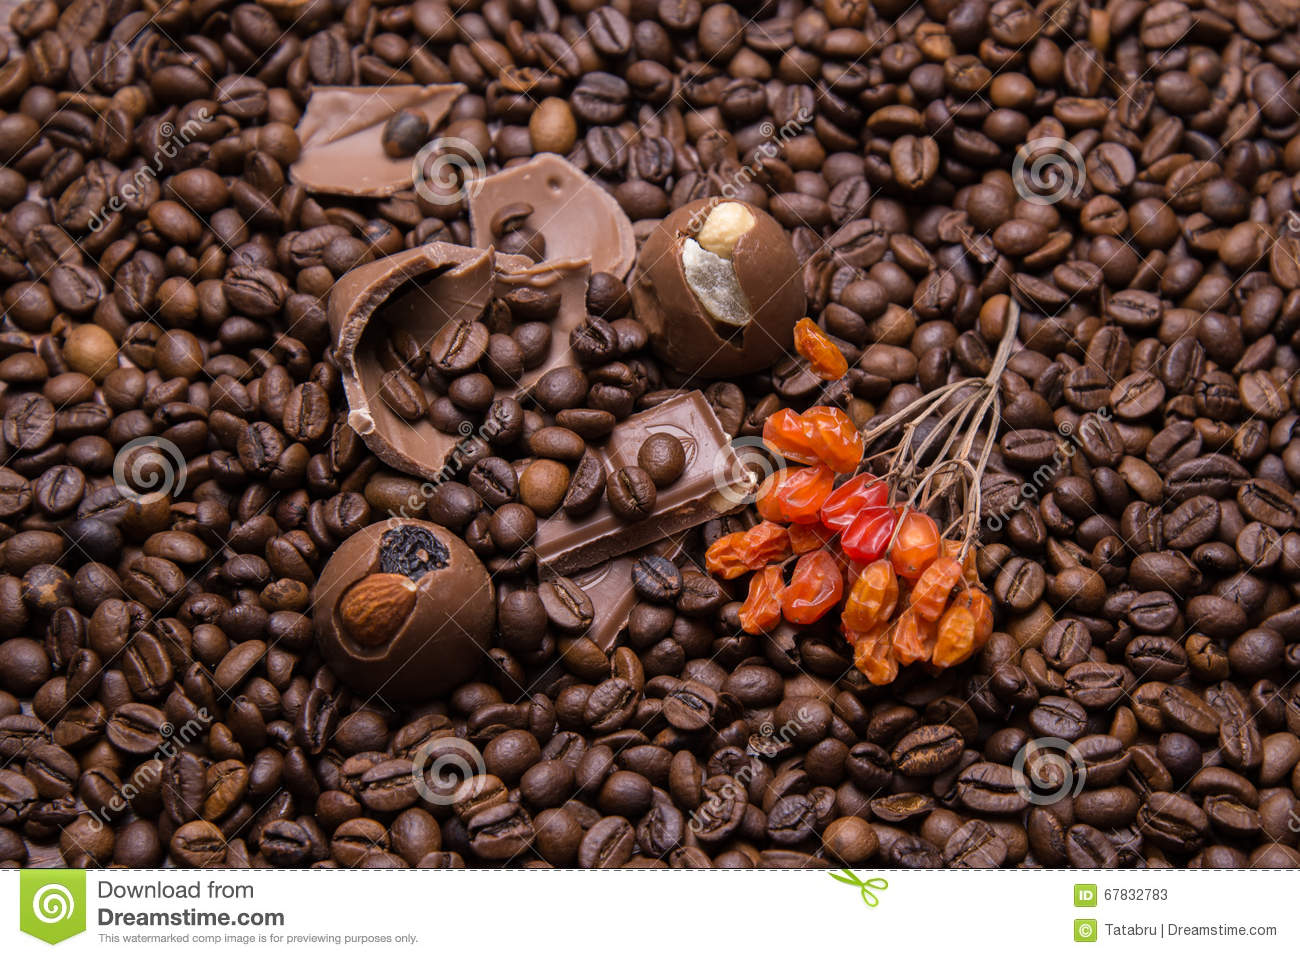 Coffee beans wallpaper with chocolate and viburnum berrie. Image